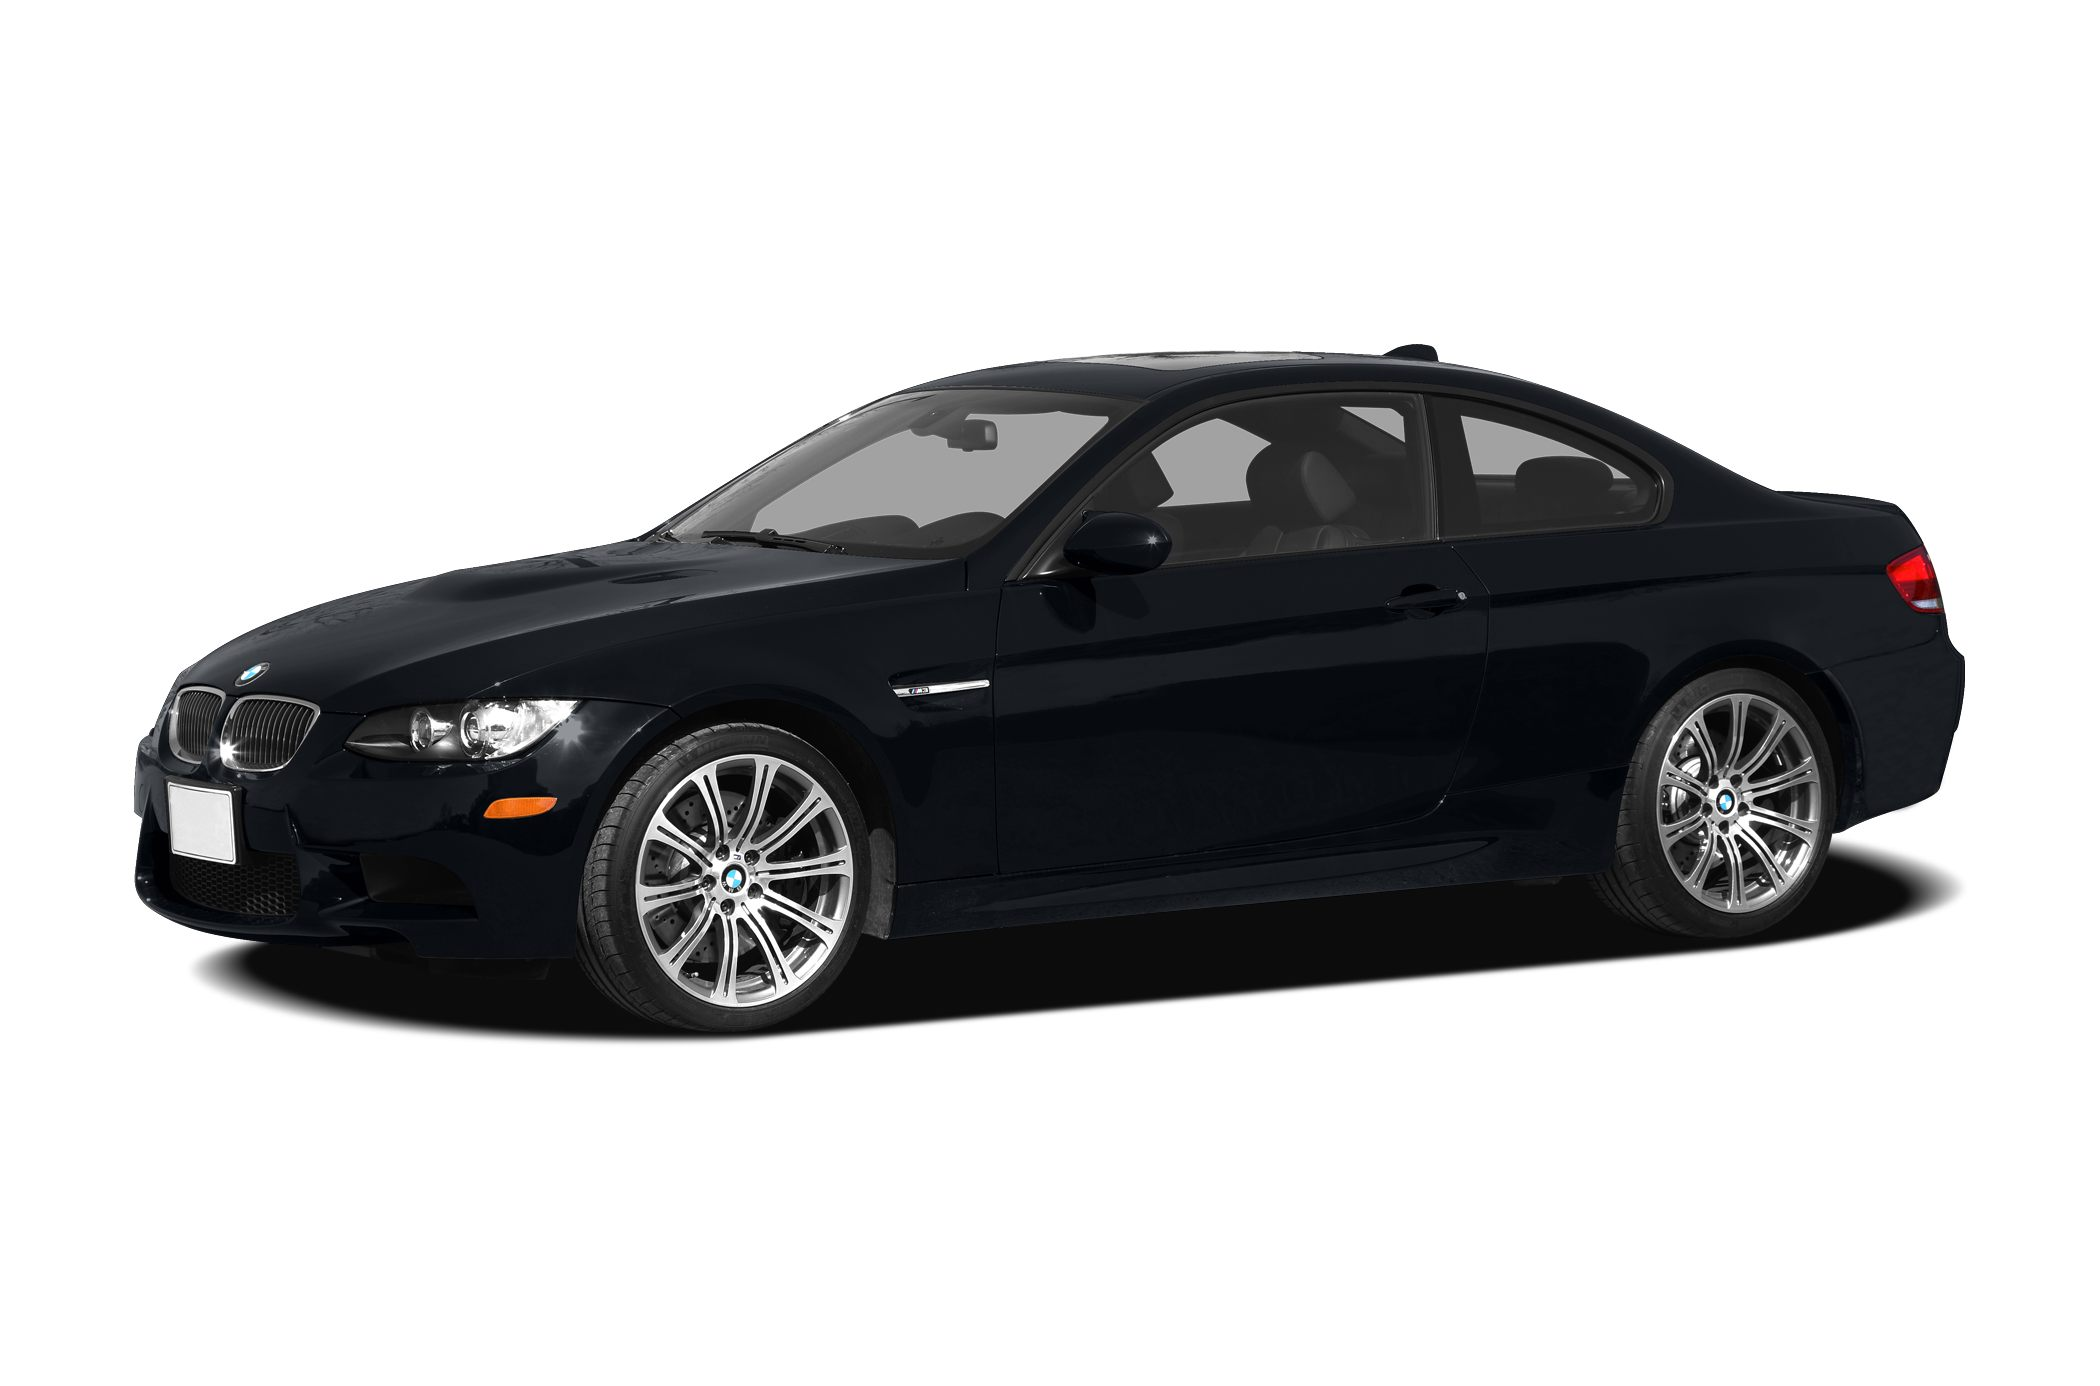 2012 BMW M3 Base Coupe for sale in New York for $54,995 with 26,035 miles.